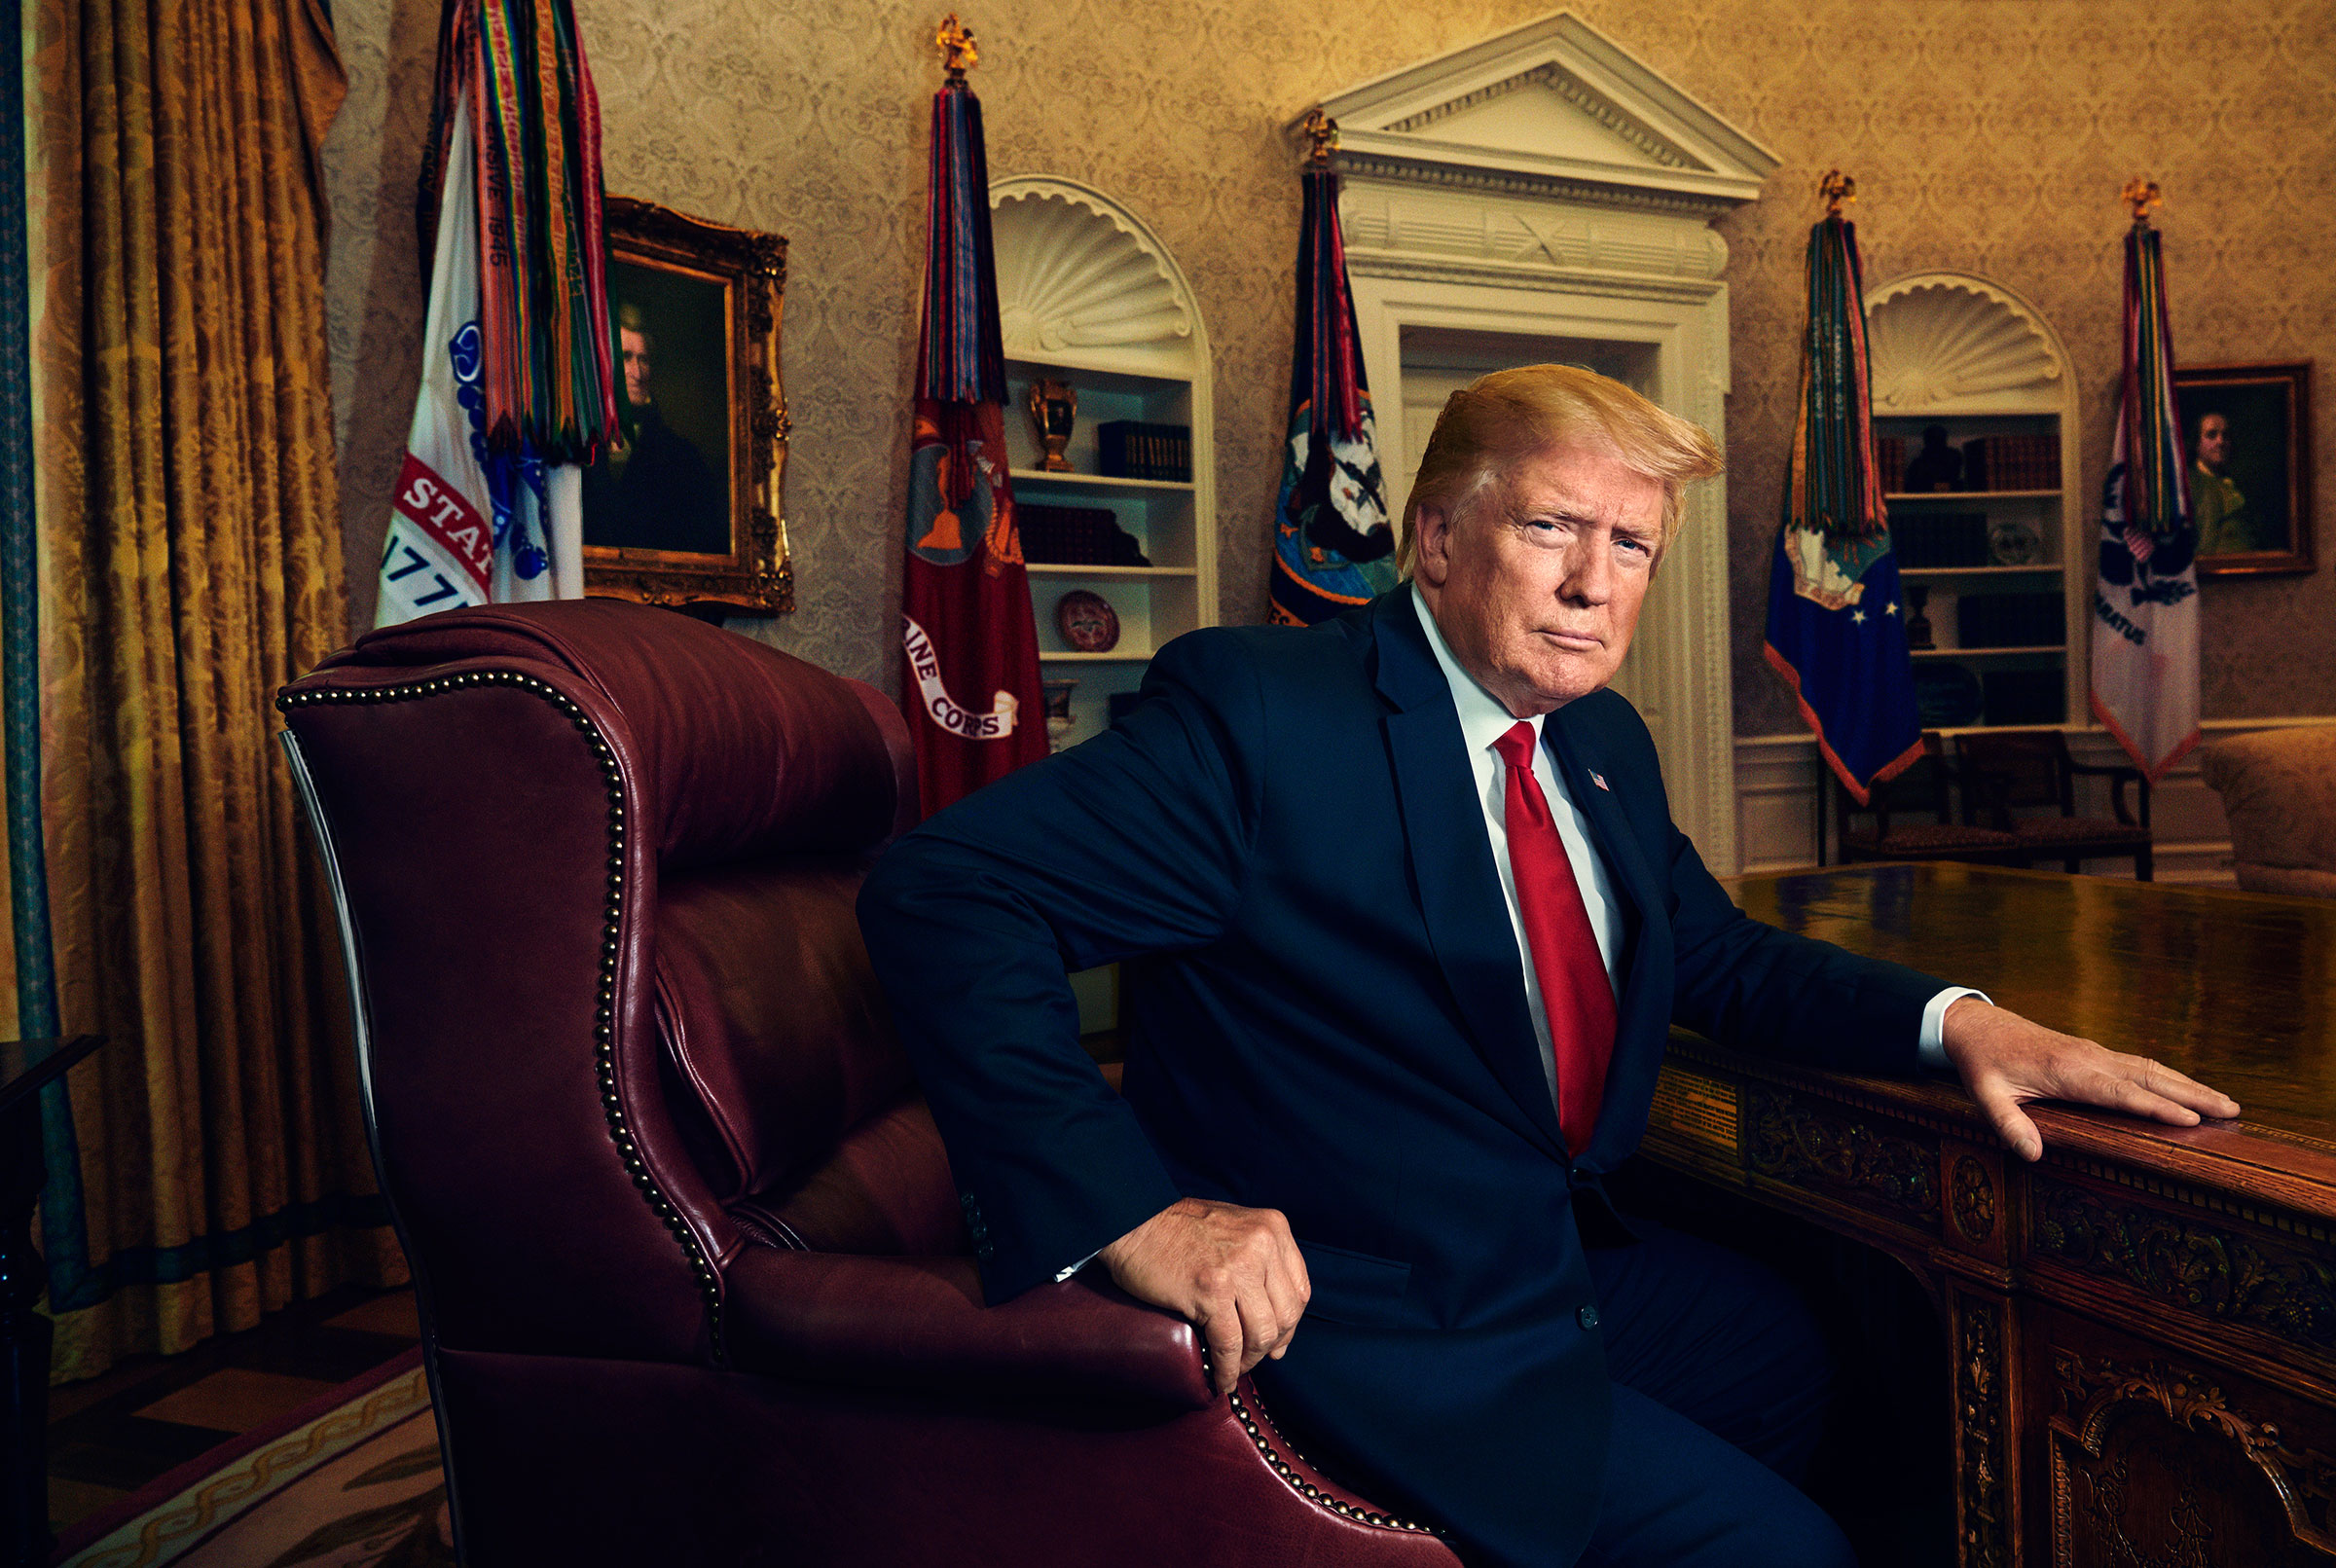 Trump in the Oval Office on June 17.